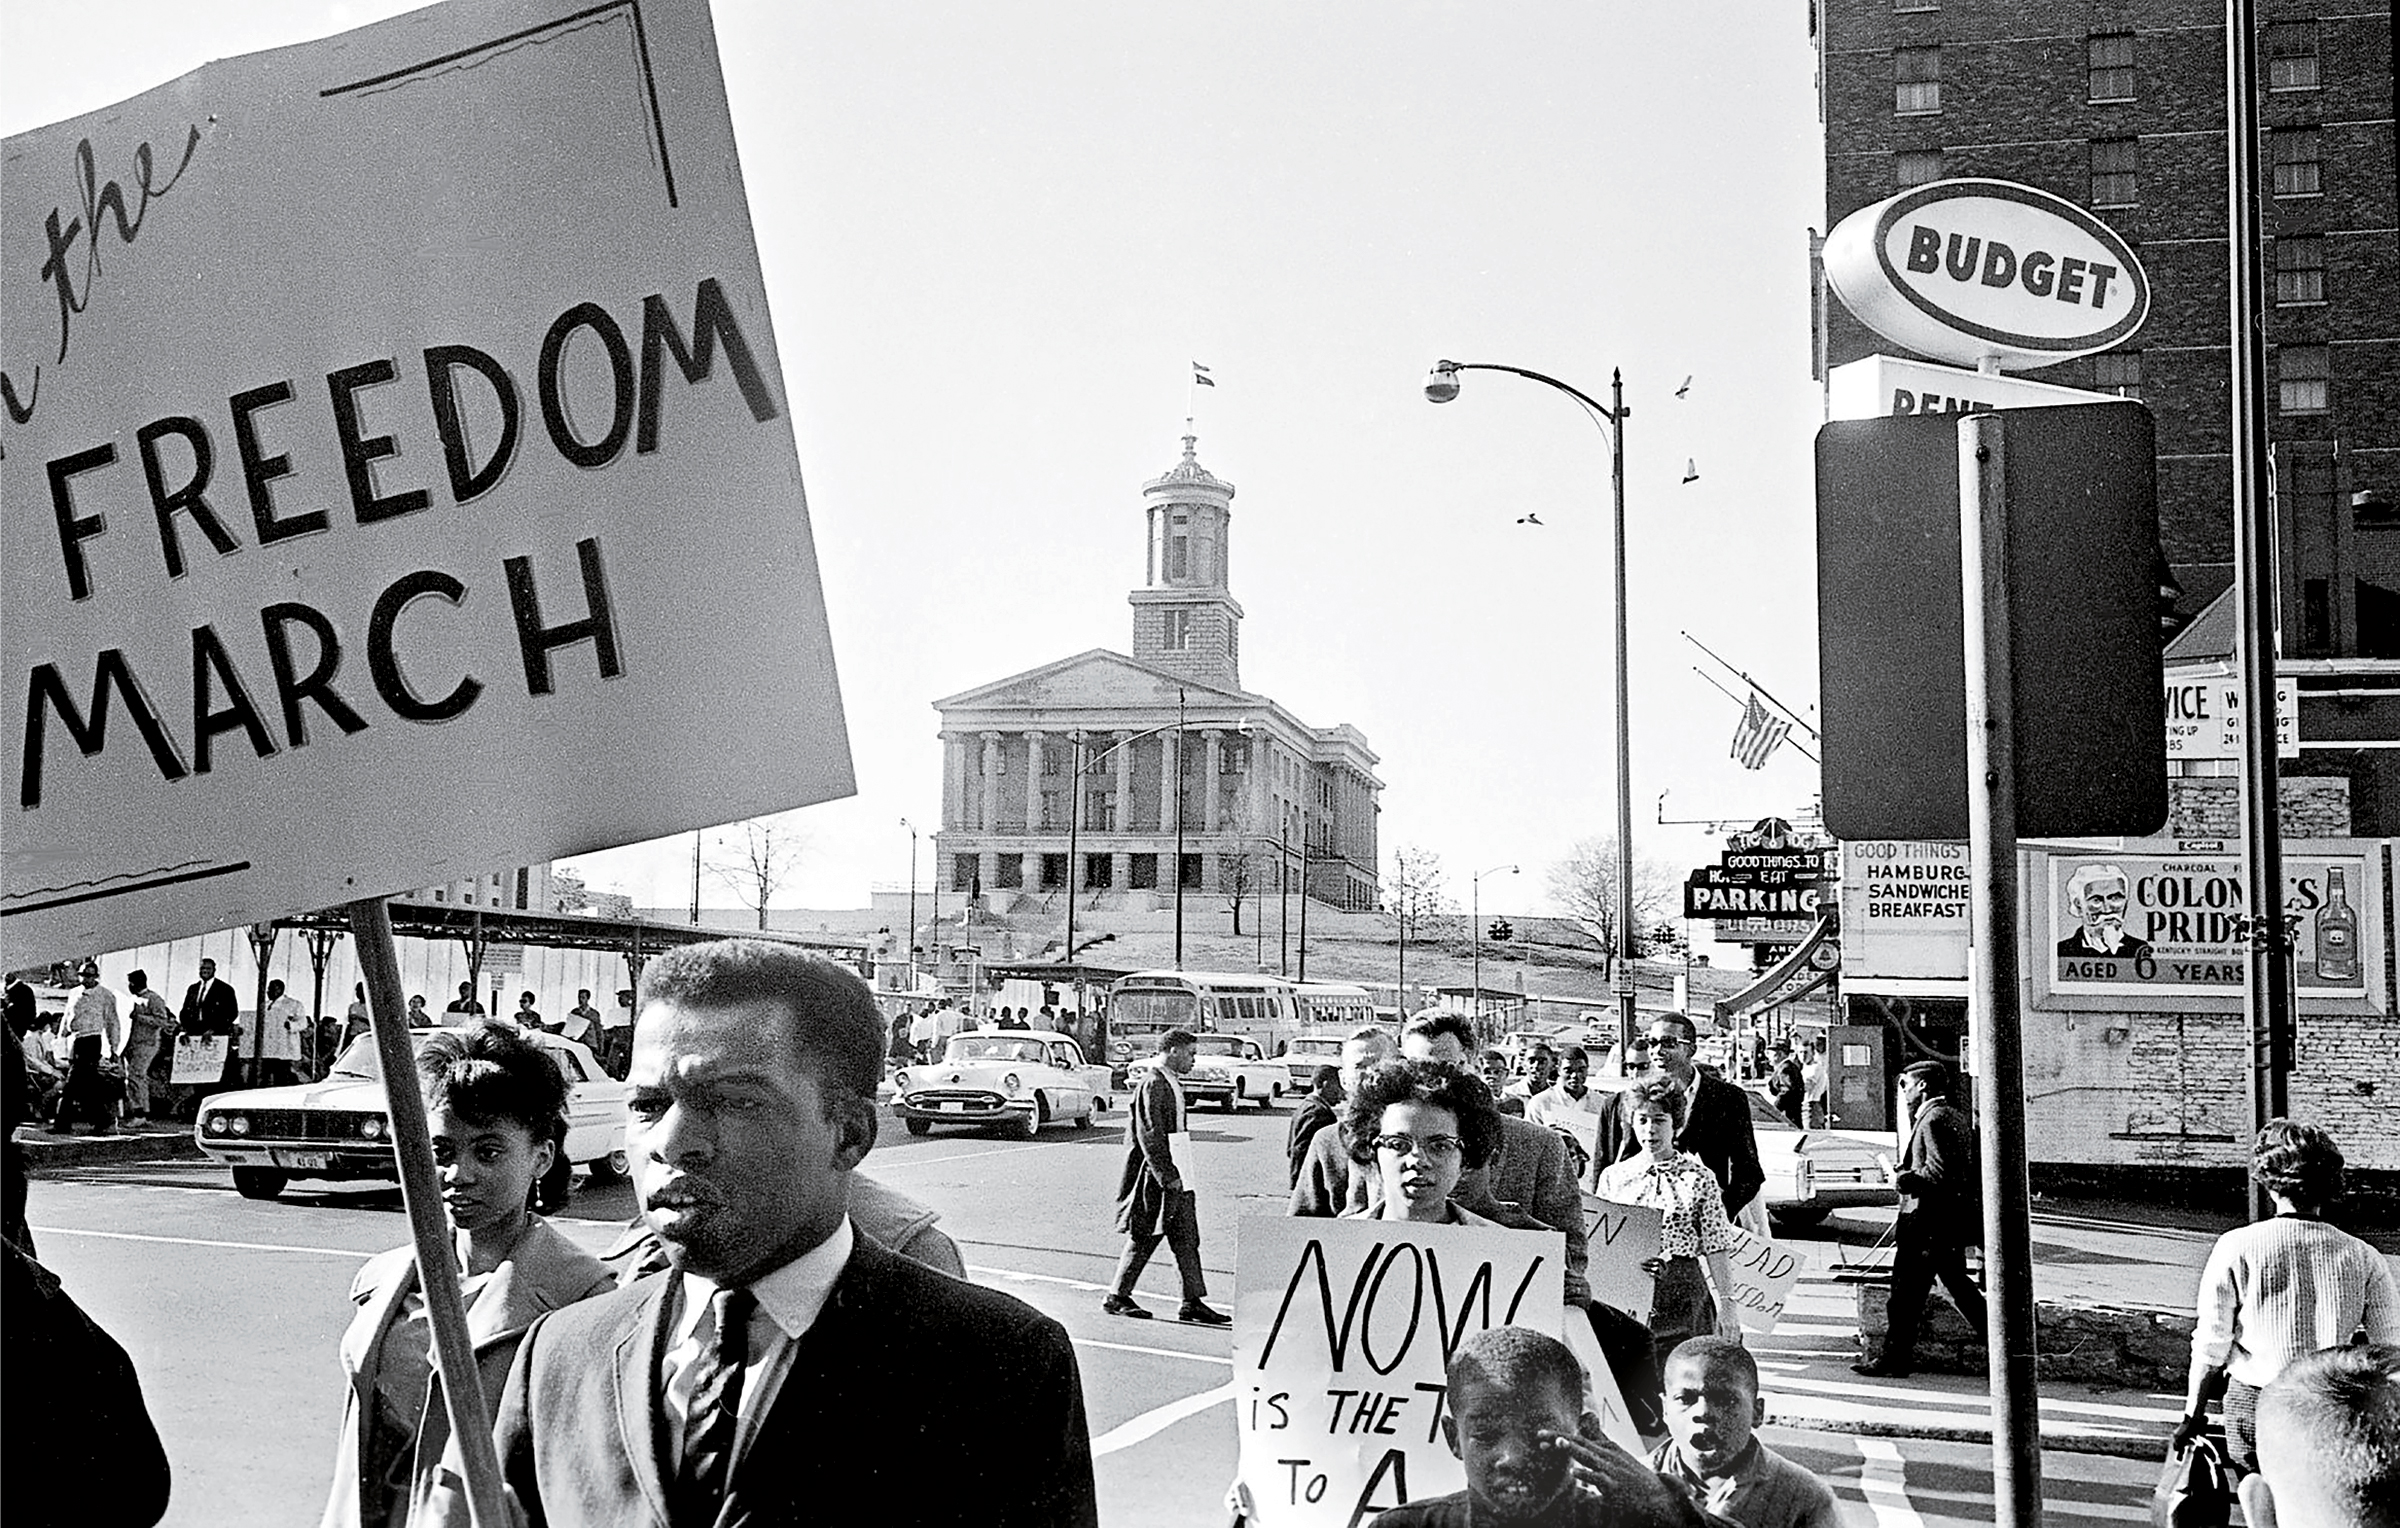 John Lewis, in the foreground holding a sign, demonstrates in downtown Nashville on March 23, 1963.